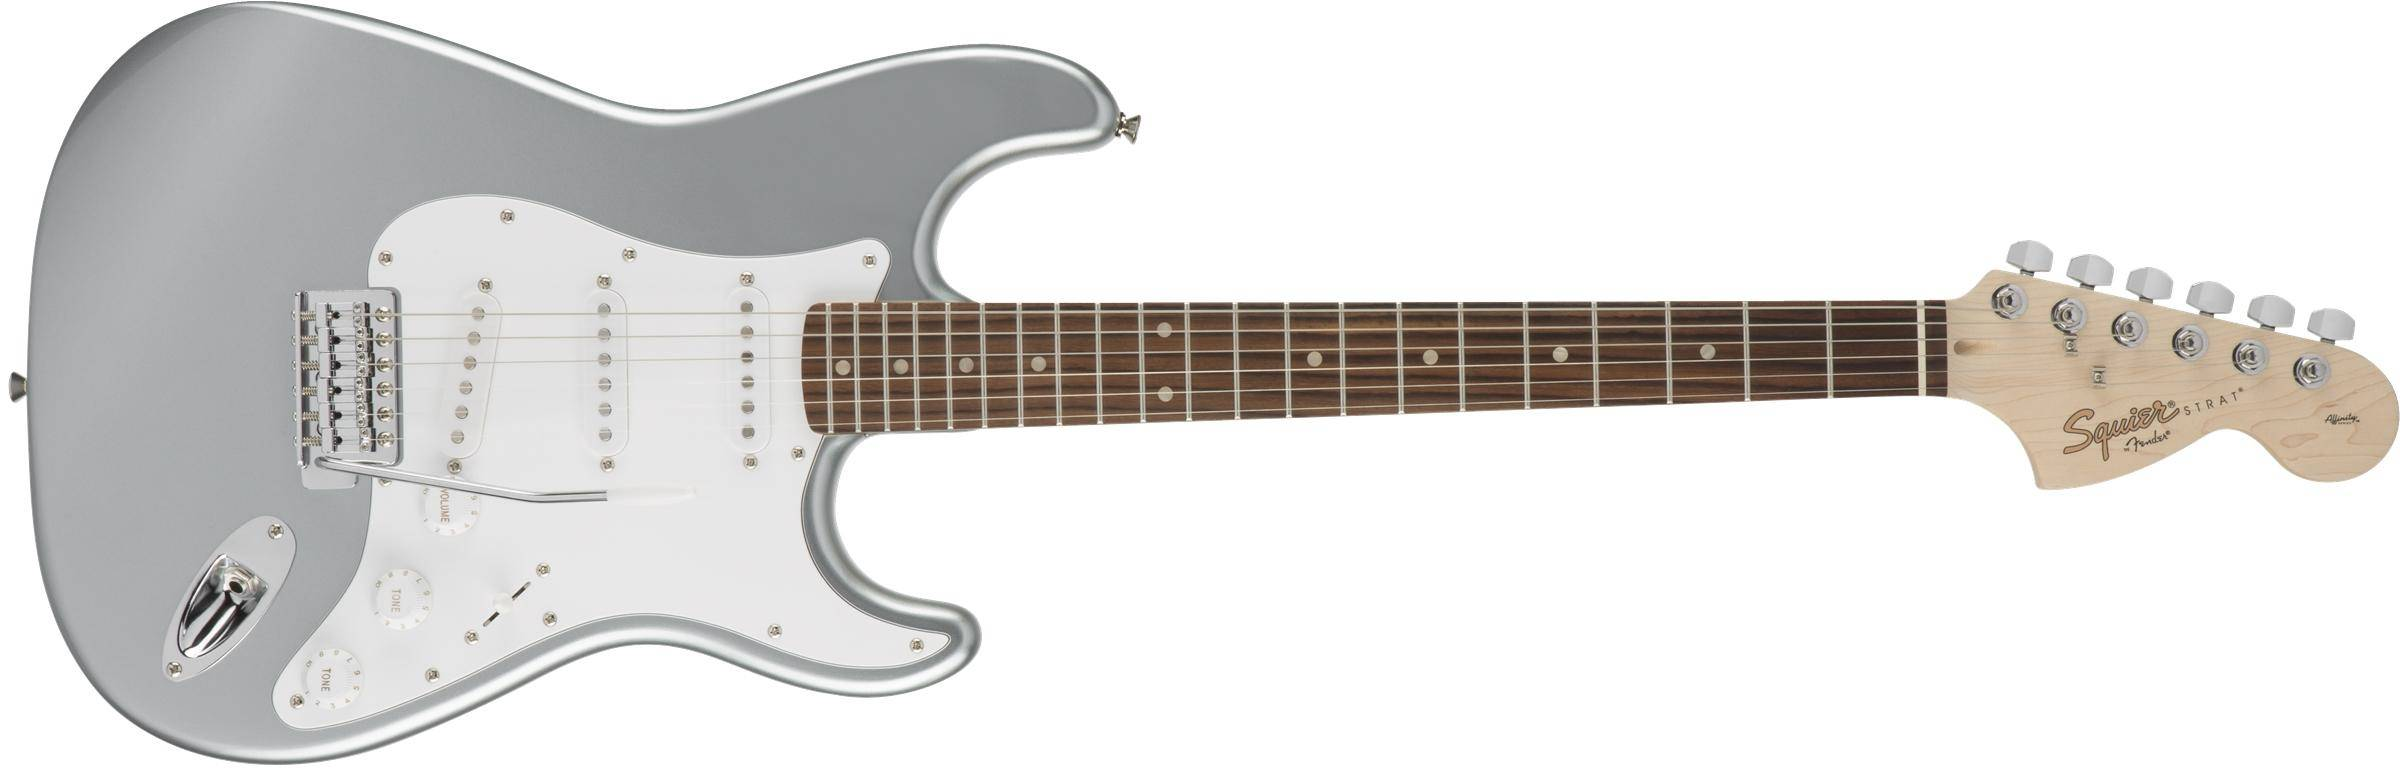 Affinity Series Stratocaster, Rosewood Fingerboard - Slick Silver